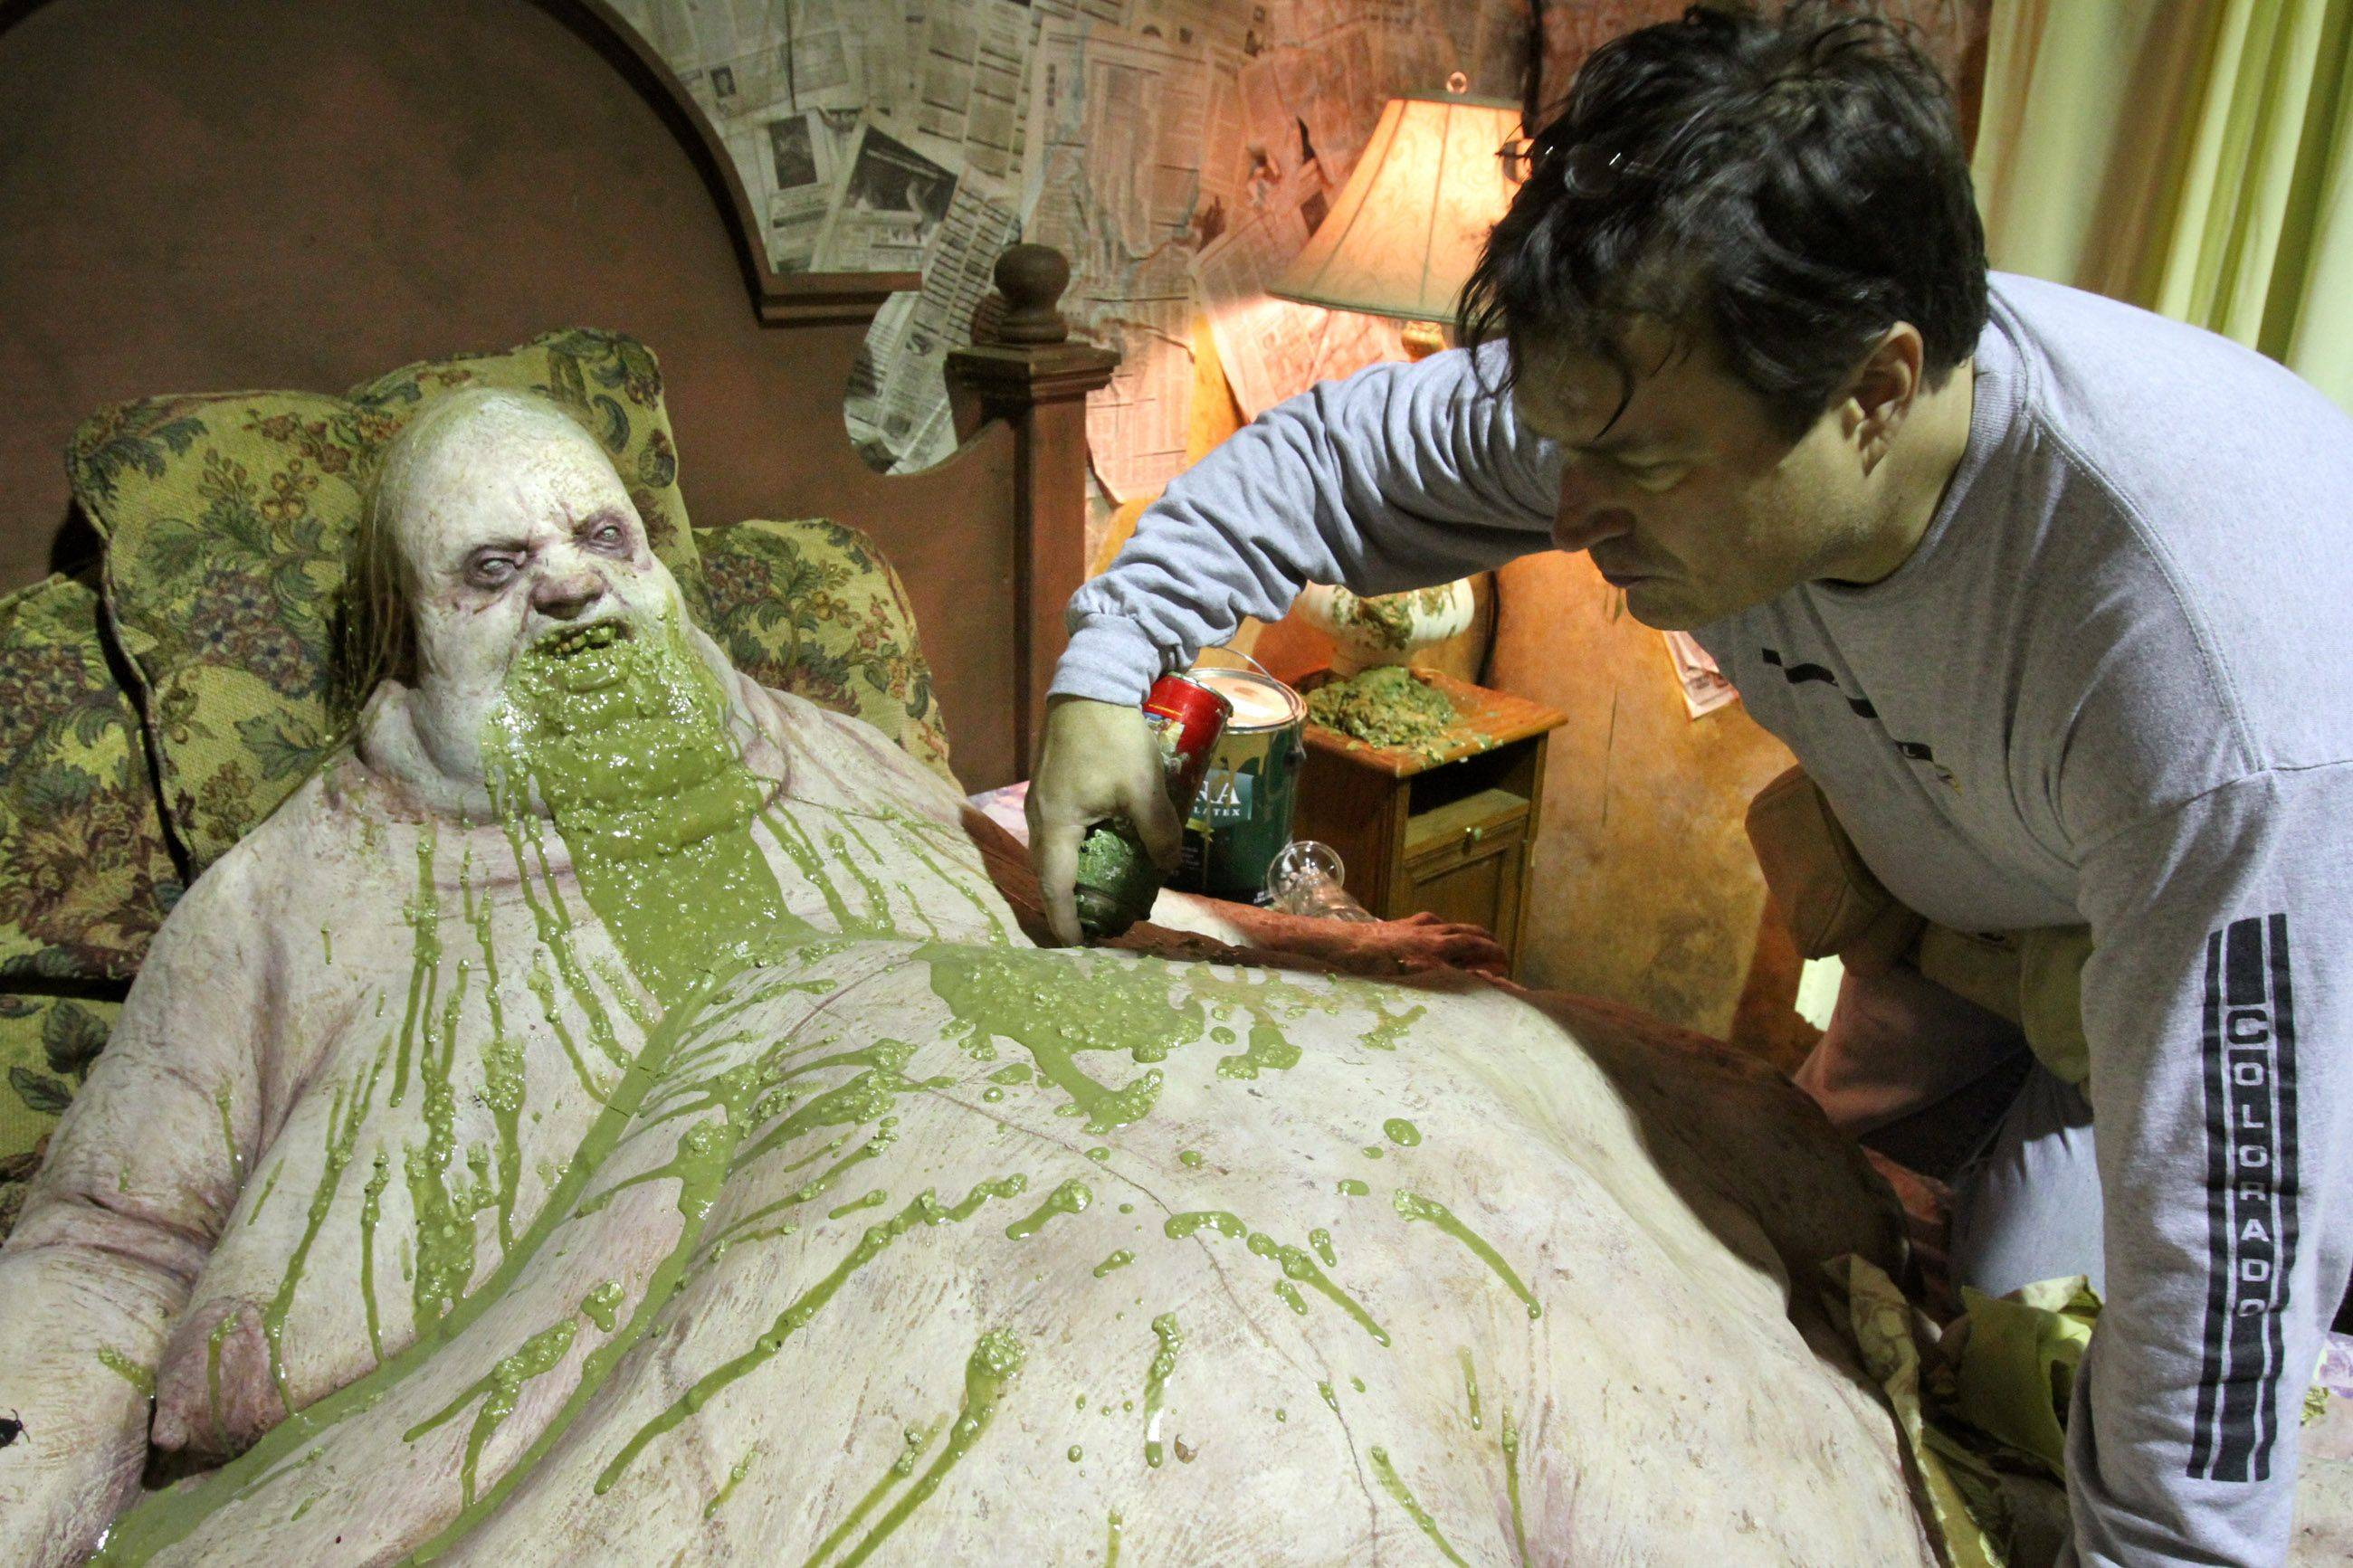 Master designer Mark Kaschube, who is also a dentist in Franklin Park, sprays paint on a prop mannequin that will be on display at Scream in the Park in Rosemont's entertainment district.